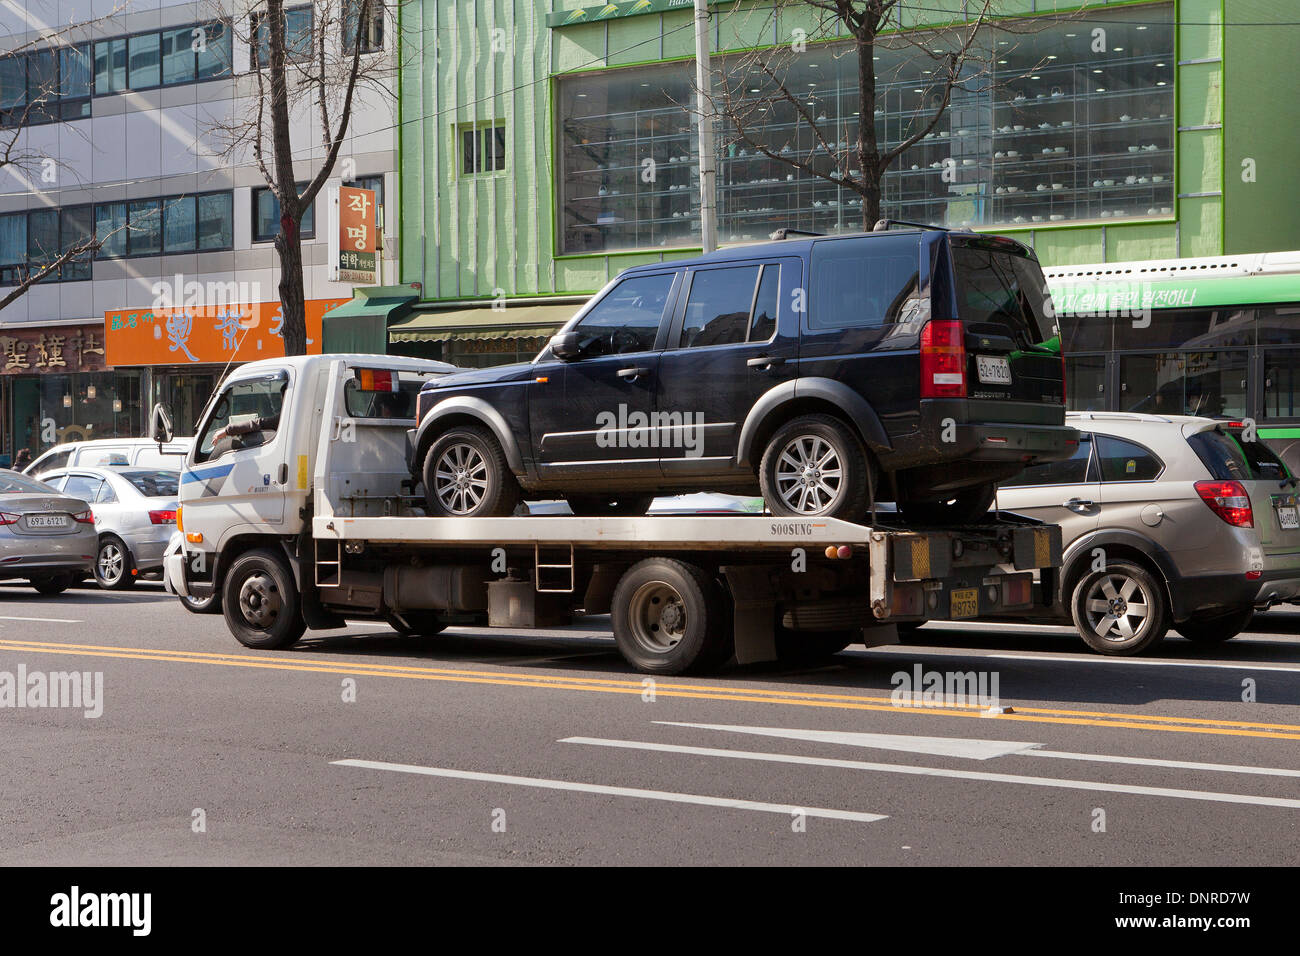 Car on flatbed tow truck seoul south korea stock image